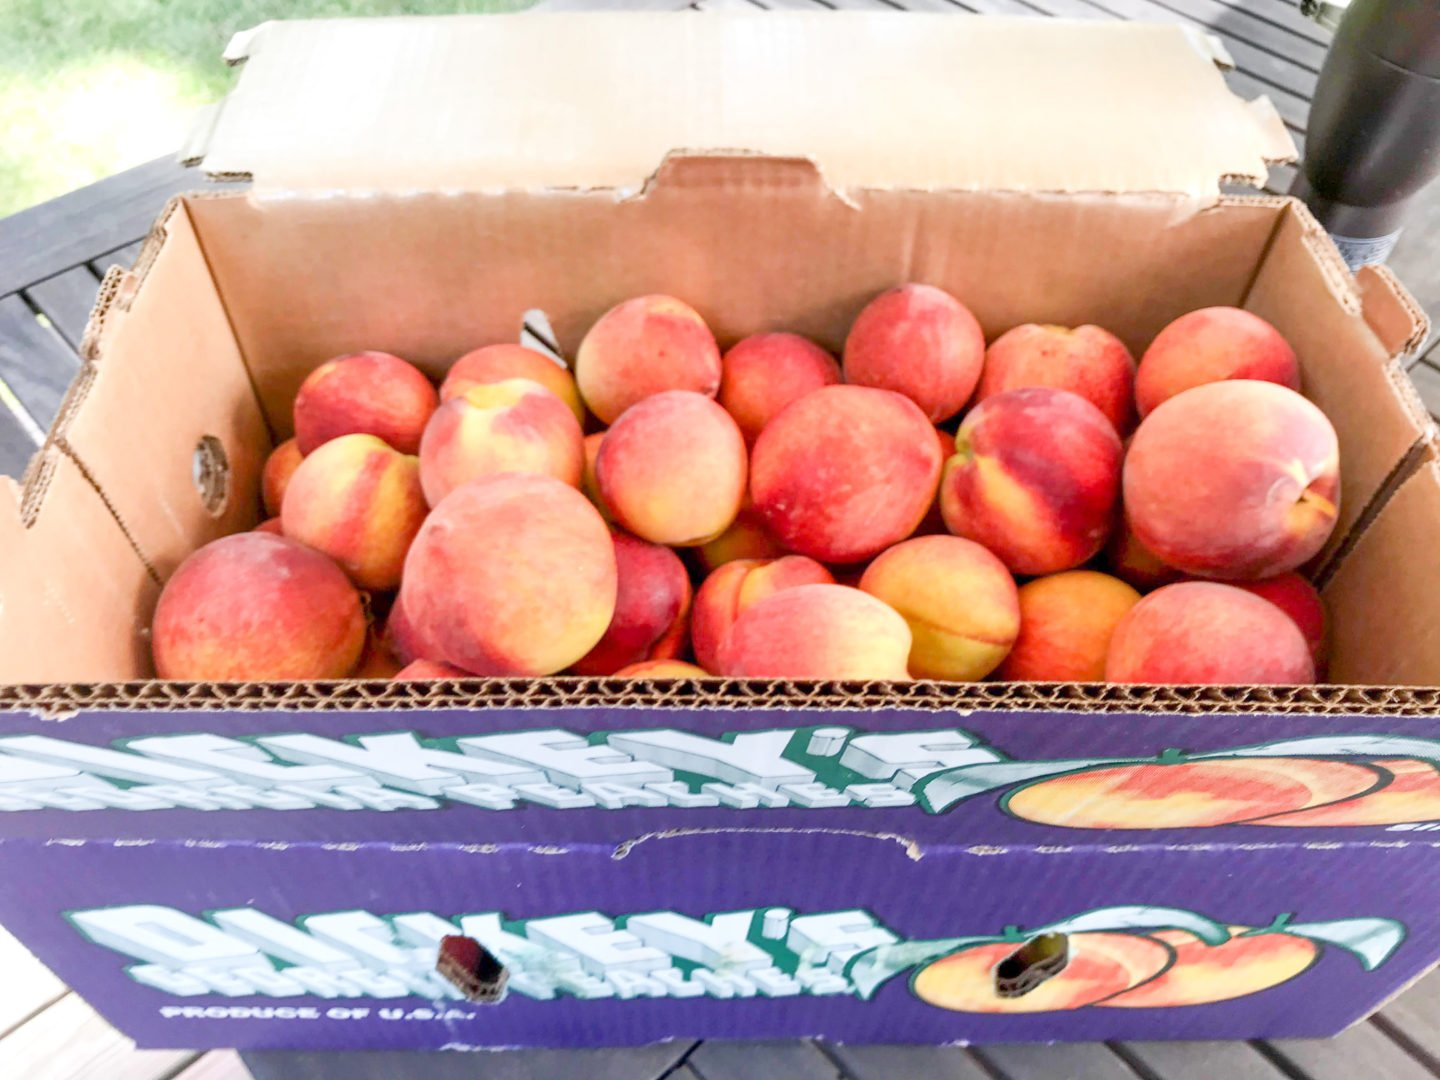 25lbs of peaches from the Georgia Peach Truck. With this many peaches, fresh peach cobbler is a must!